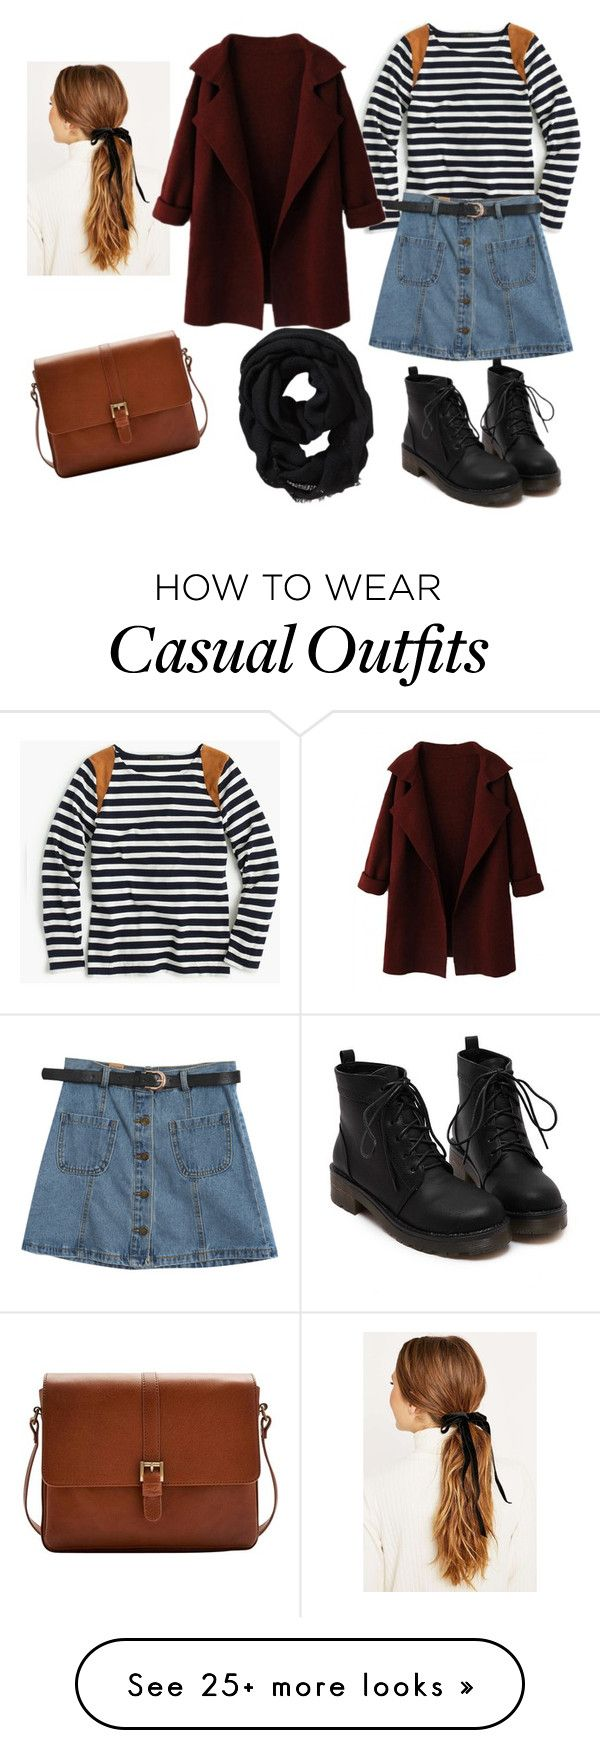 """Casual 1"" by thinladybird on Polyvore featuring moda, J.Crew, Chicnova Fashion, Joules e Old Navy"